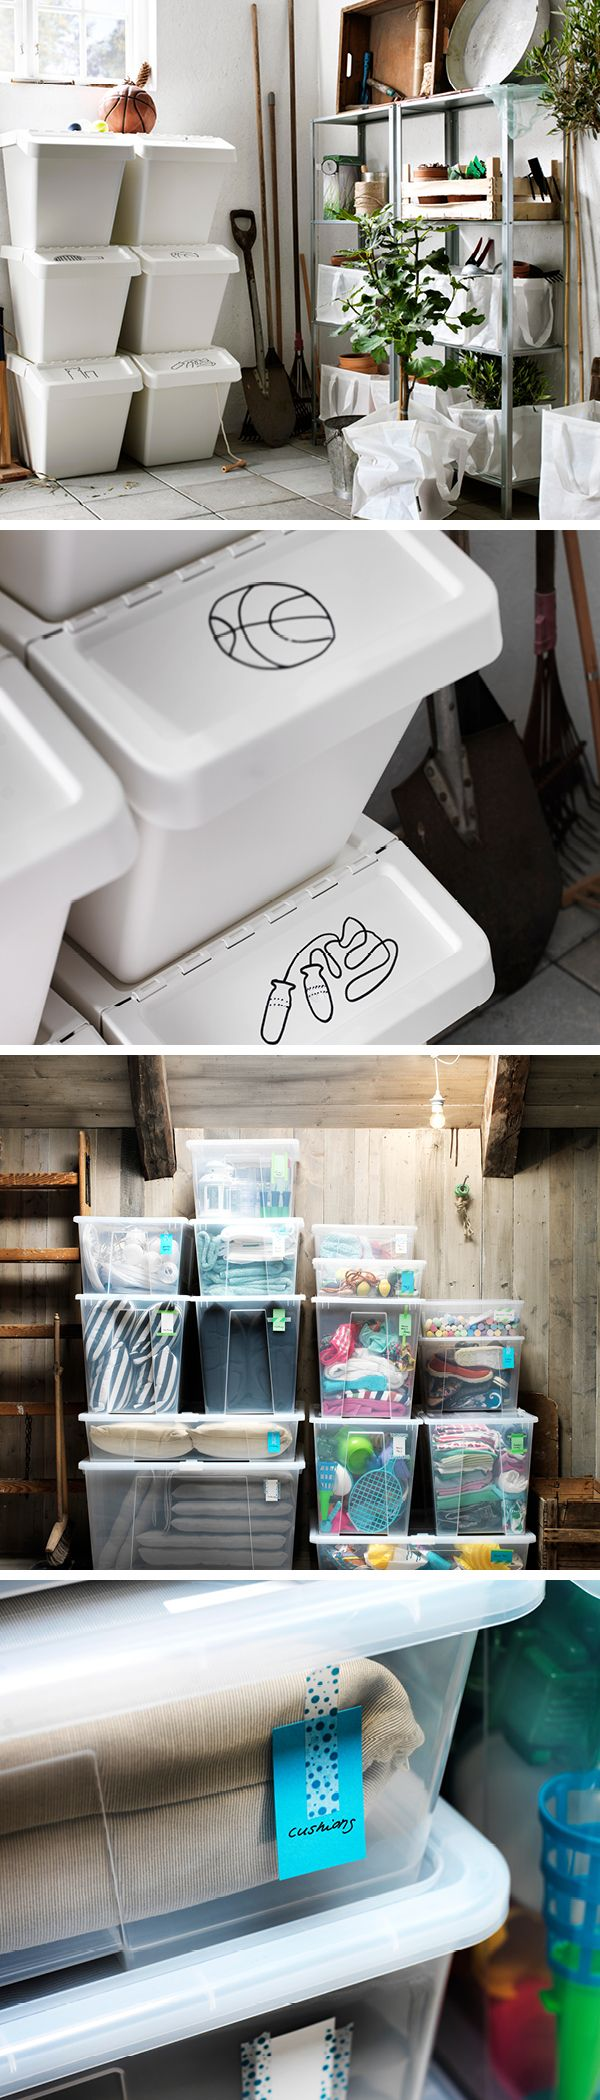 Bring in the gardening tools and sports equipment, but keep out the damp and dirt with sealable storage. You can repurpose these waste sorting boxes for a cost- effective garage storage option. Plus, thanks to the folding lid, they're easily stackable, so they're great space savers. Labelling tip: A simple sketch on the lid of these storage boxes is a fun way to display their contents. Sealable boxes leave little opportunity for moths and dust mites. Lids also help keep musty smells away.